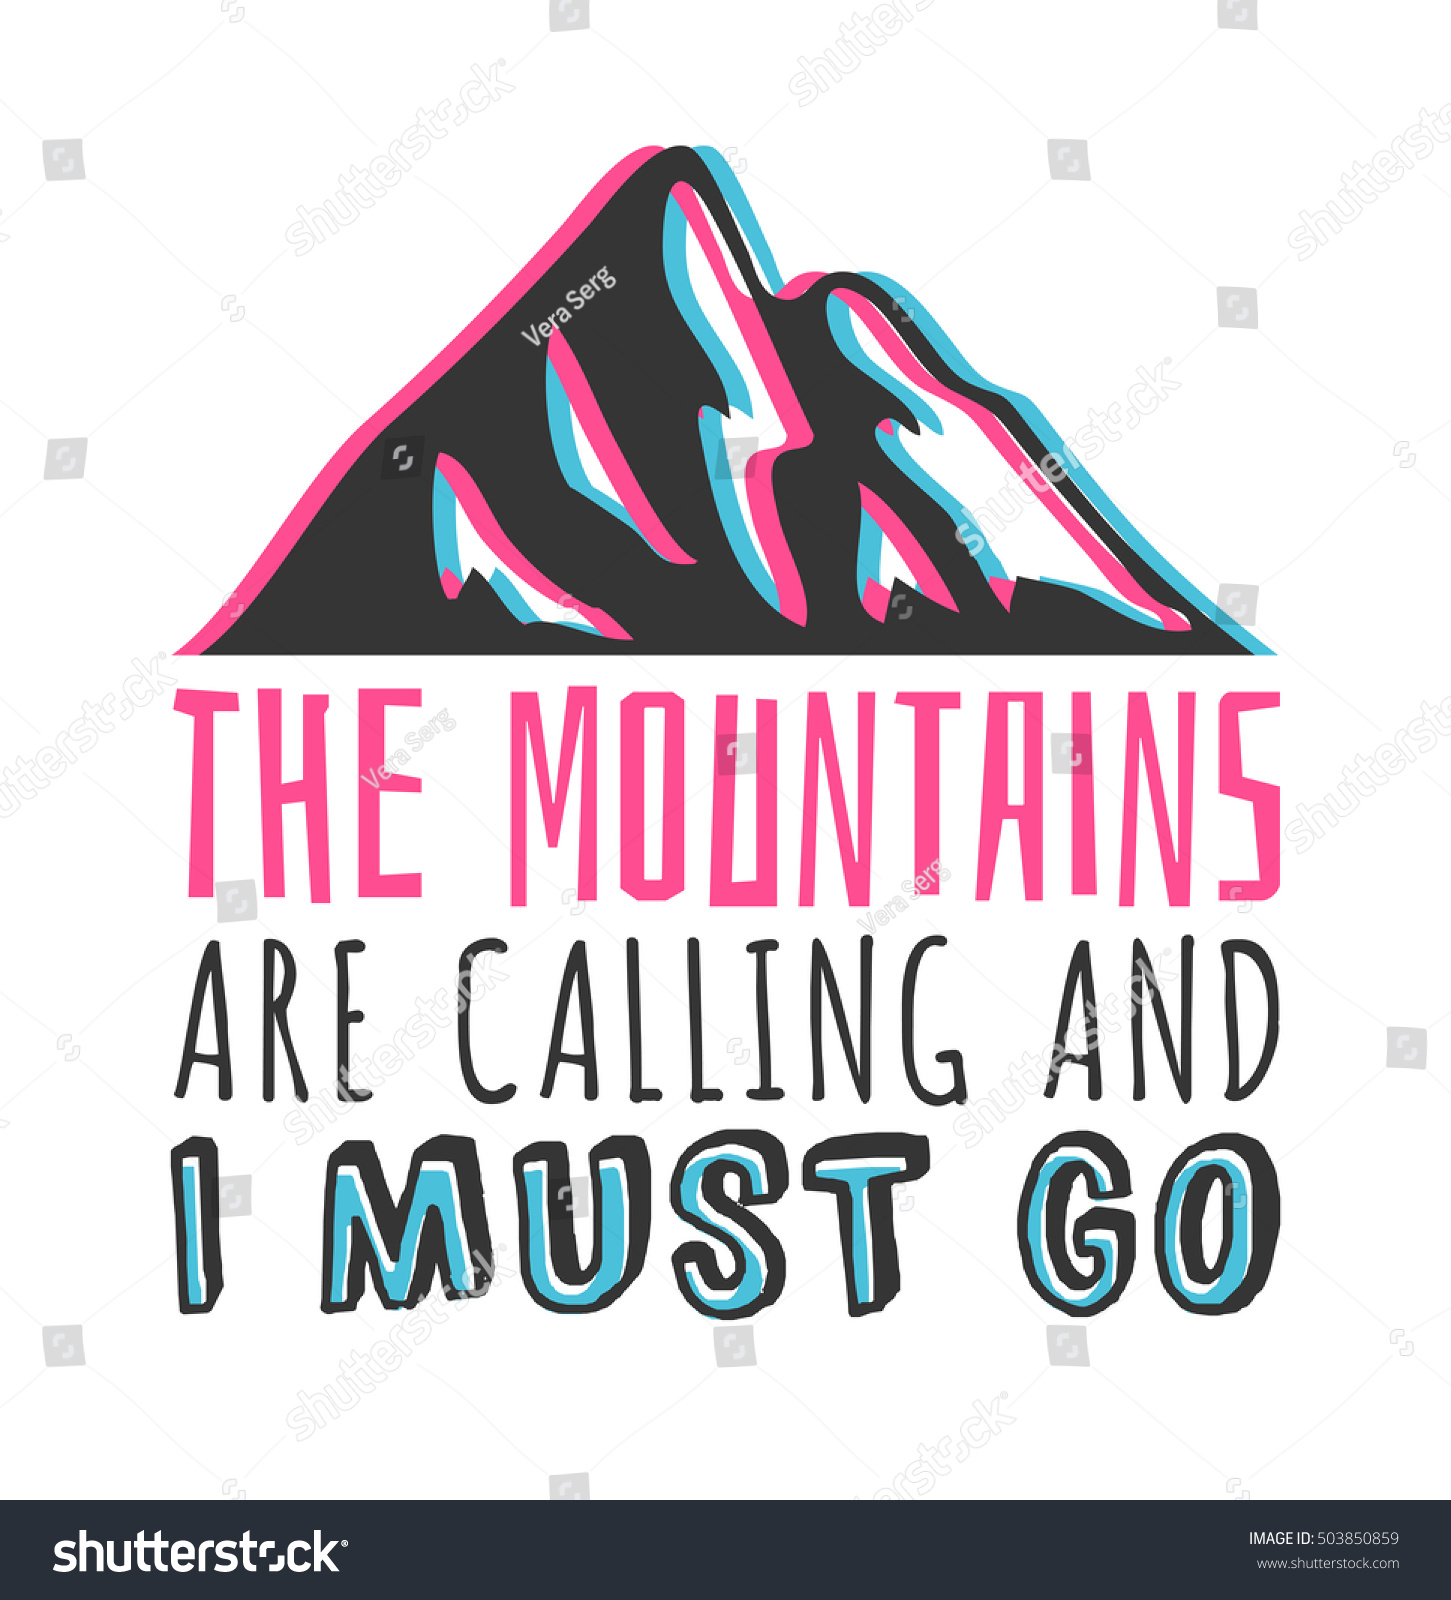 Hand drawn mountains logo ski resort stock vector for The mountains are calling and i must go metal sign